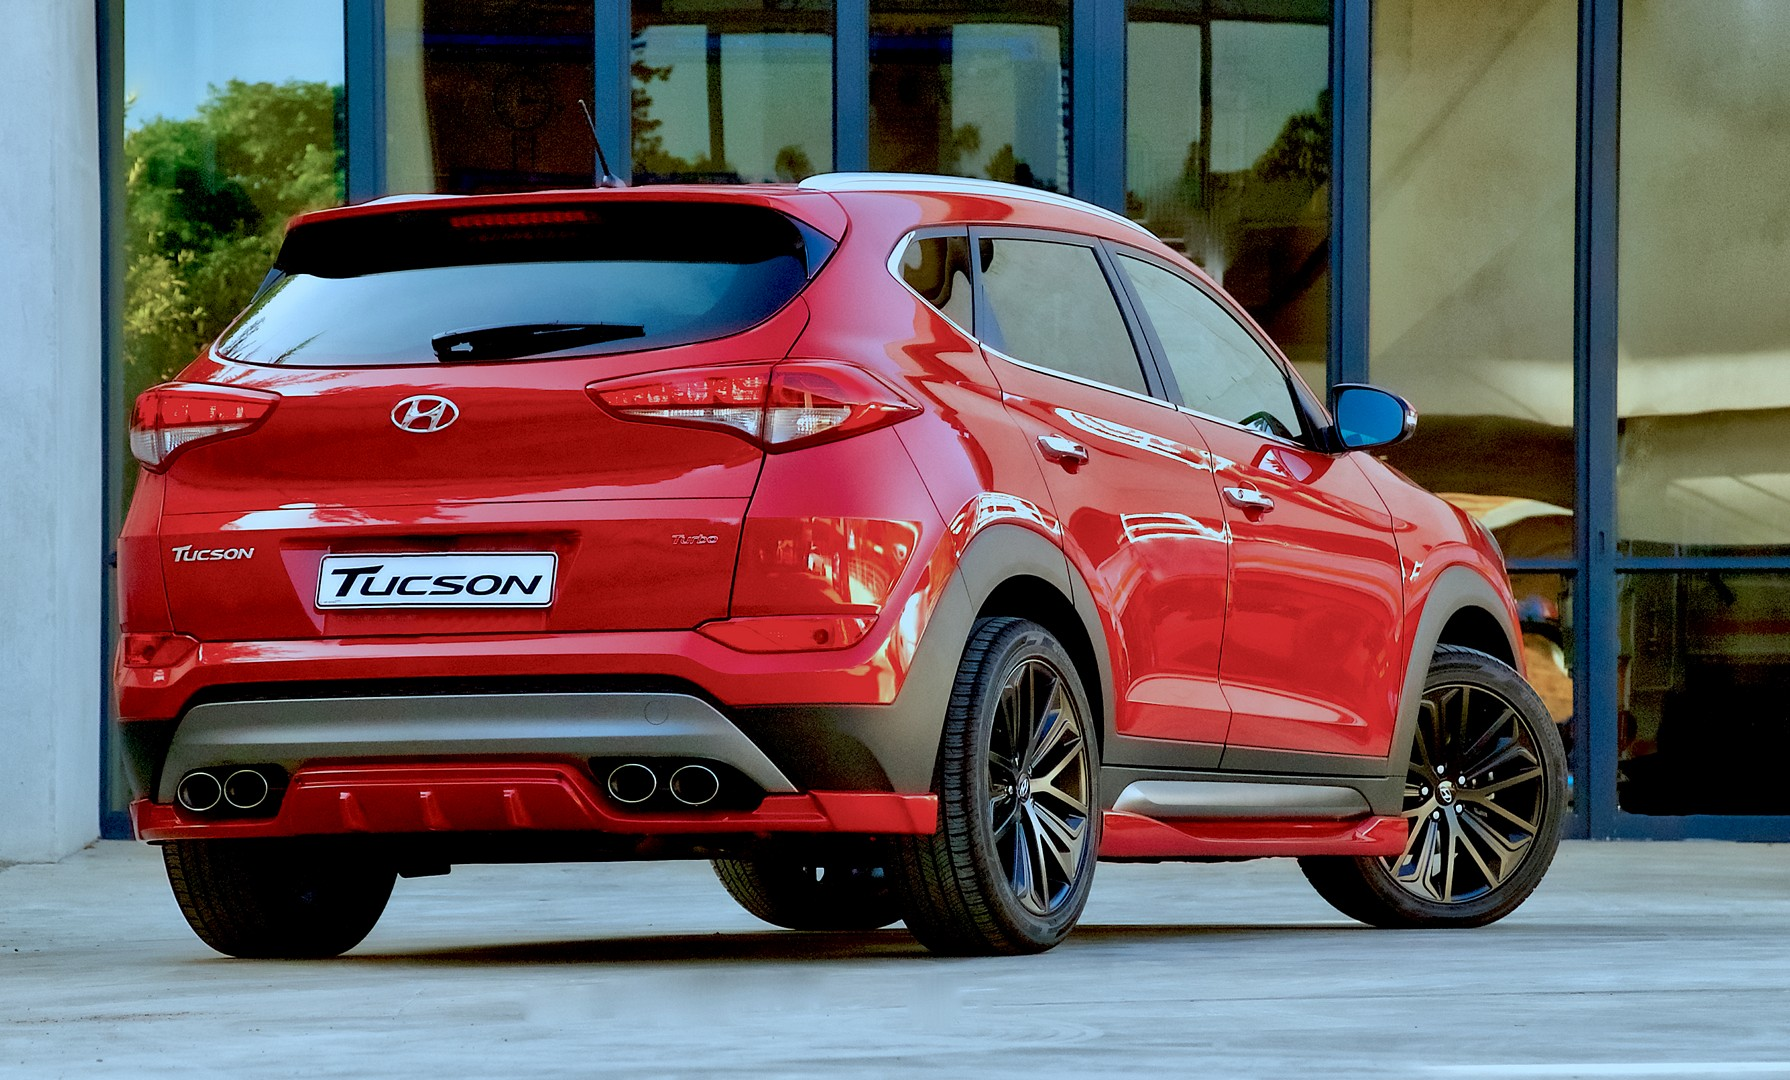 Hyundai Tucson Sport Has Body Kit Quad Pipes And 204 Hp 1 6l Turbo Autoevolution